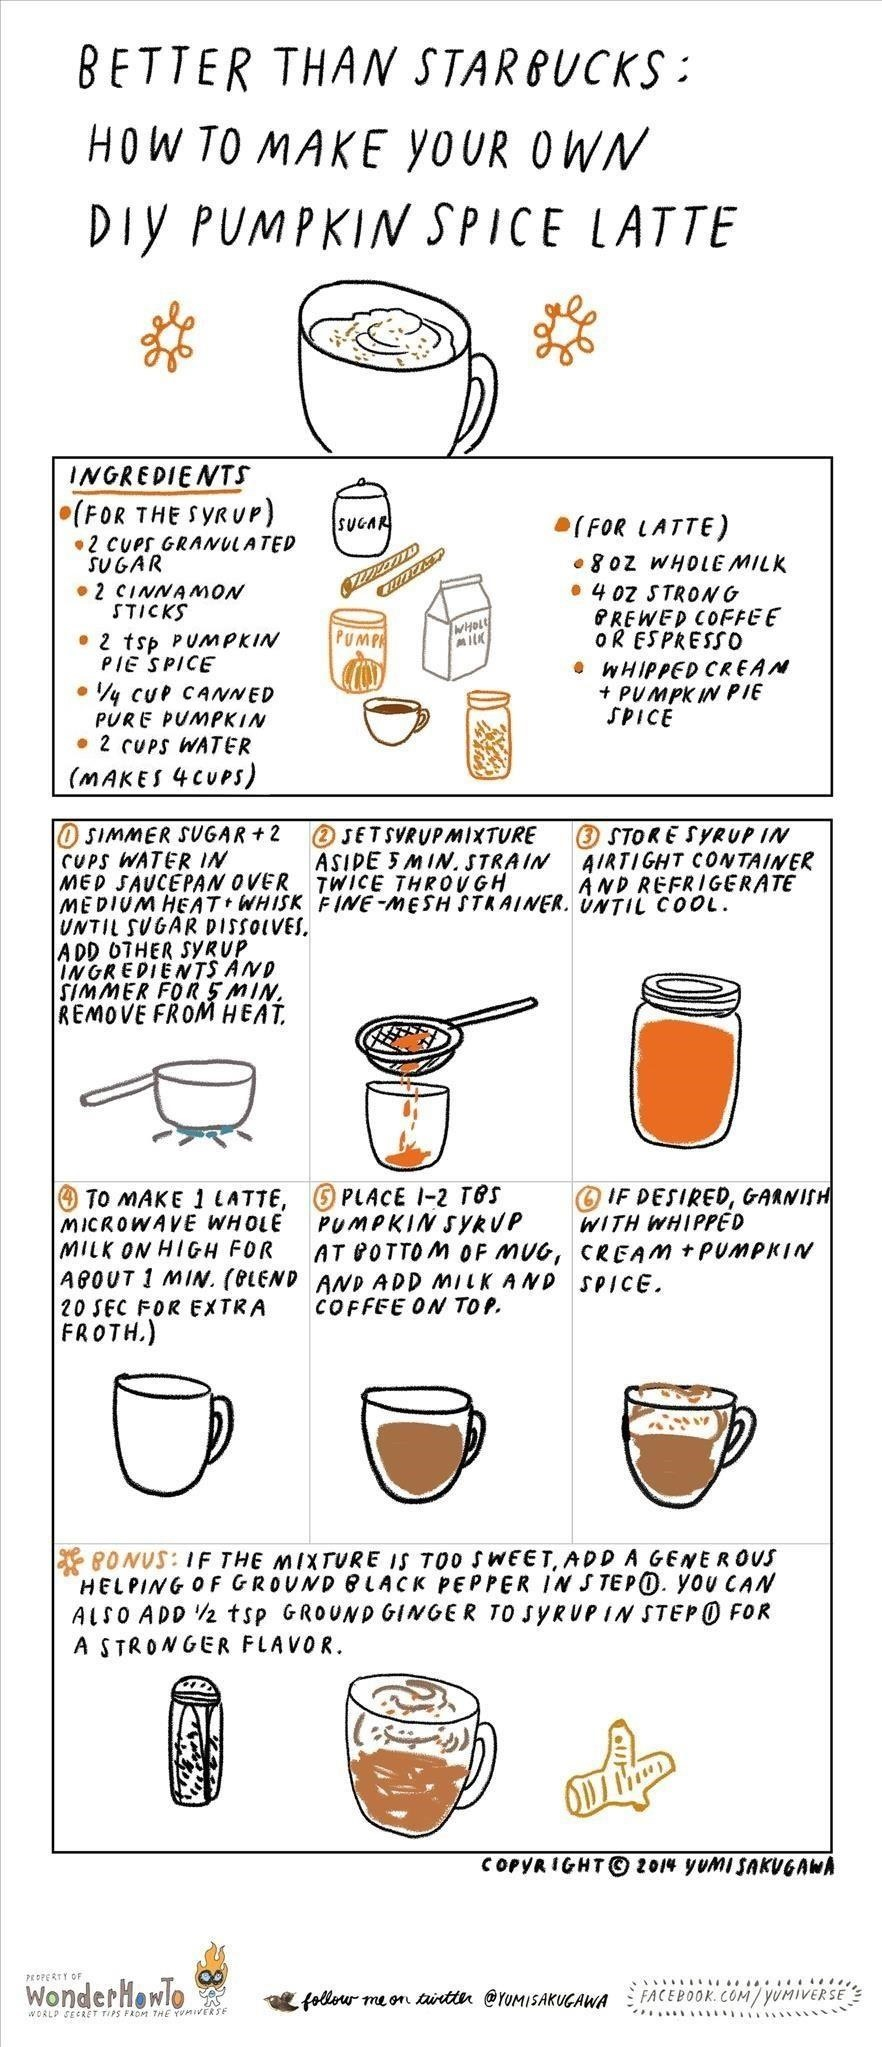 Better Than Starbucks: How to Make Your Own Pumpkin Spice Latte at Home